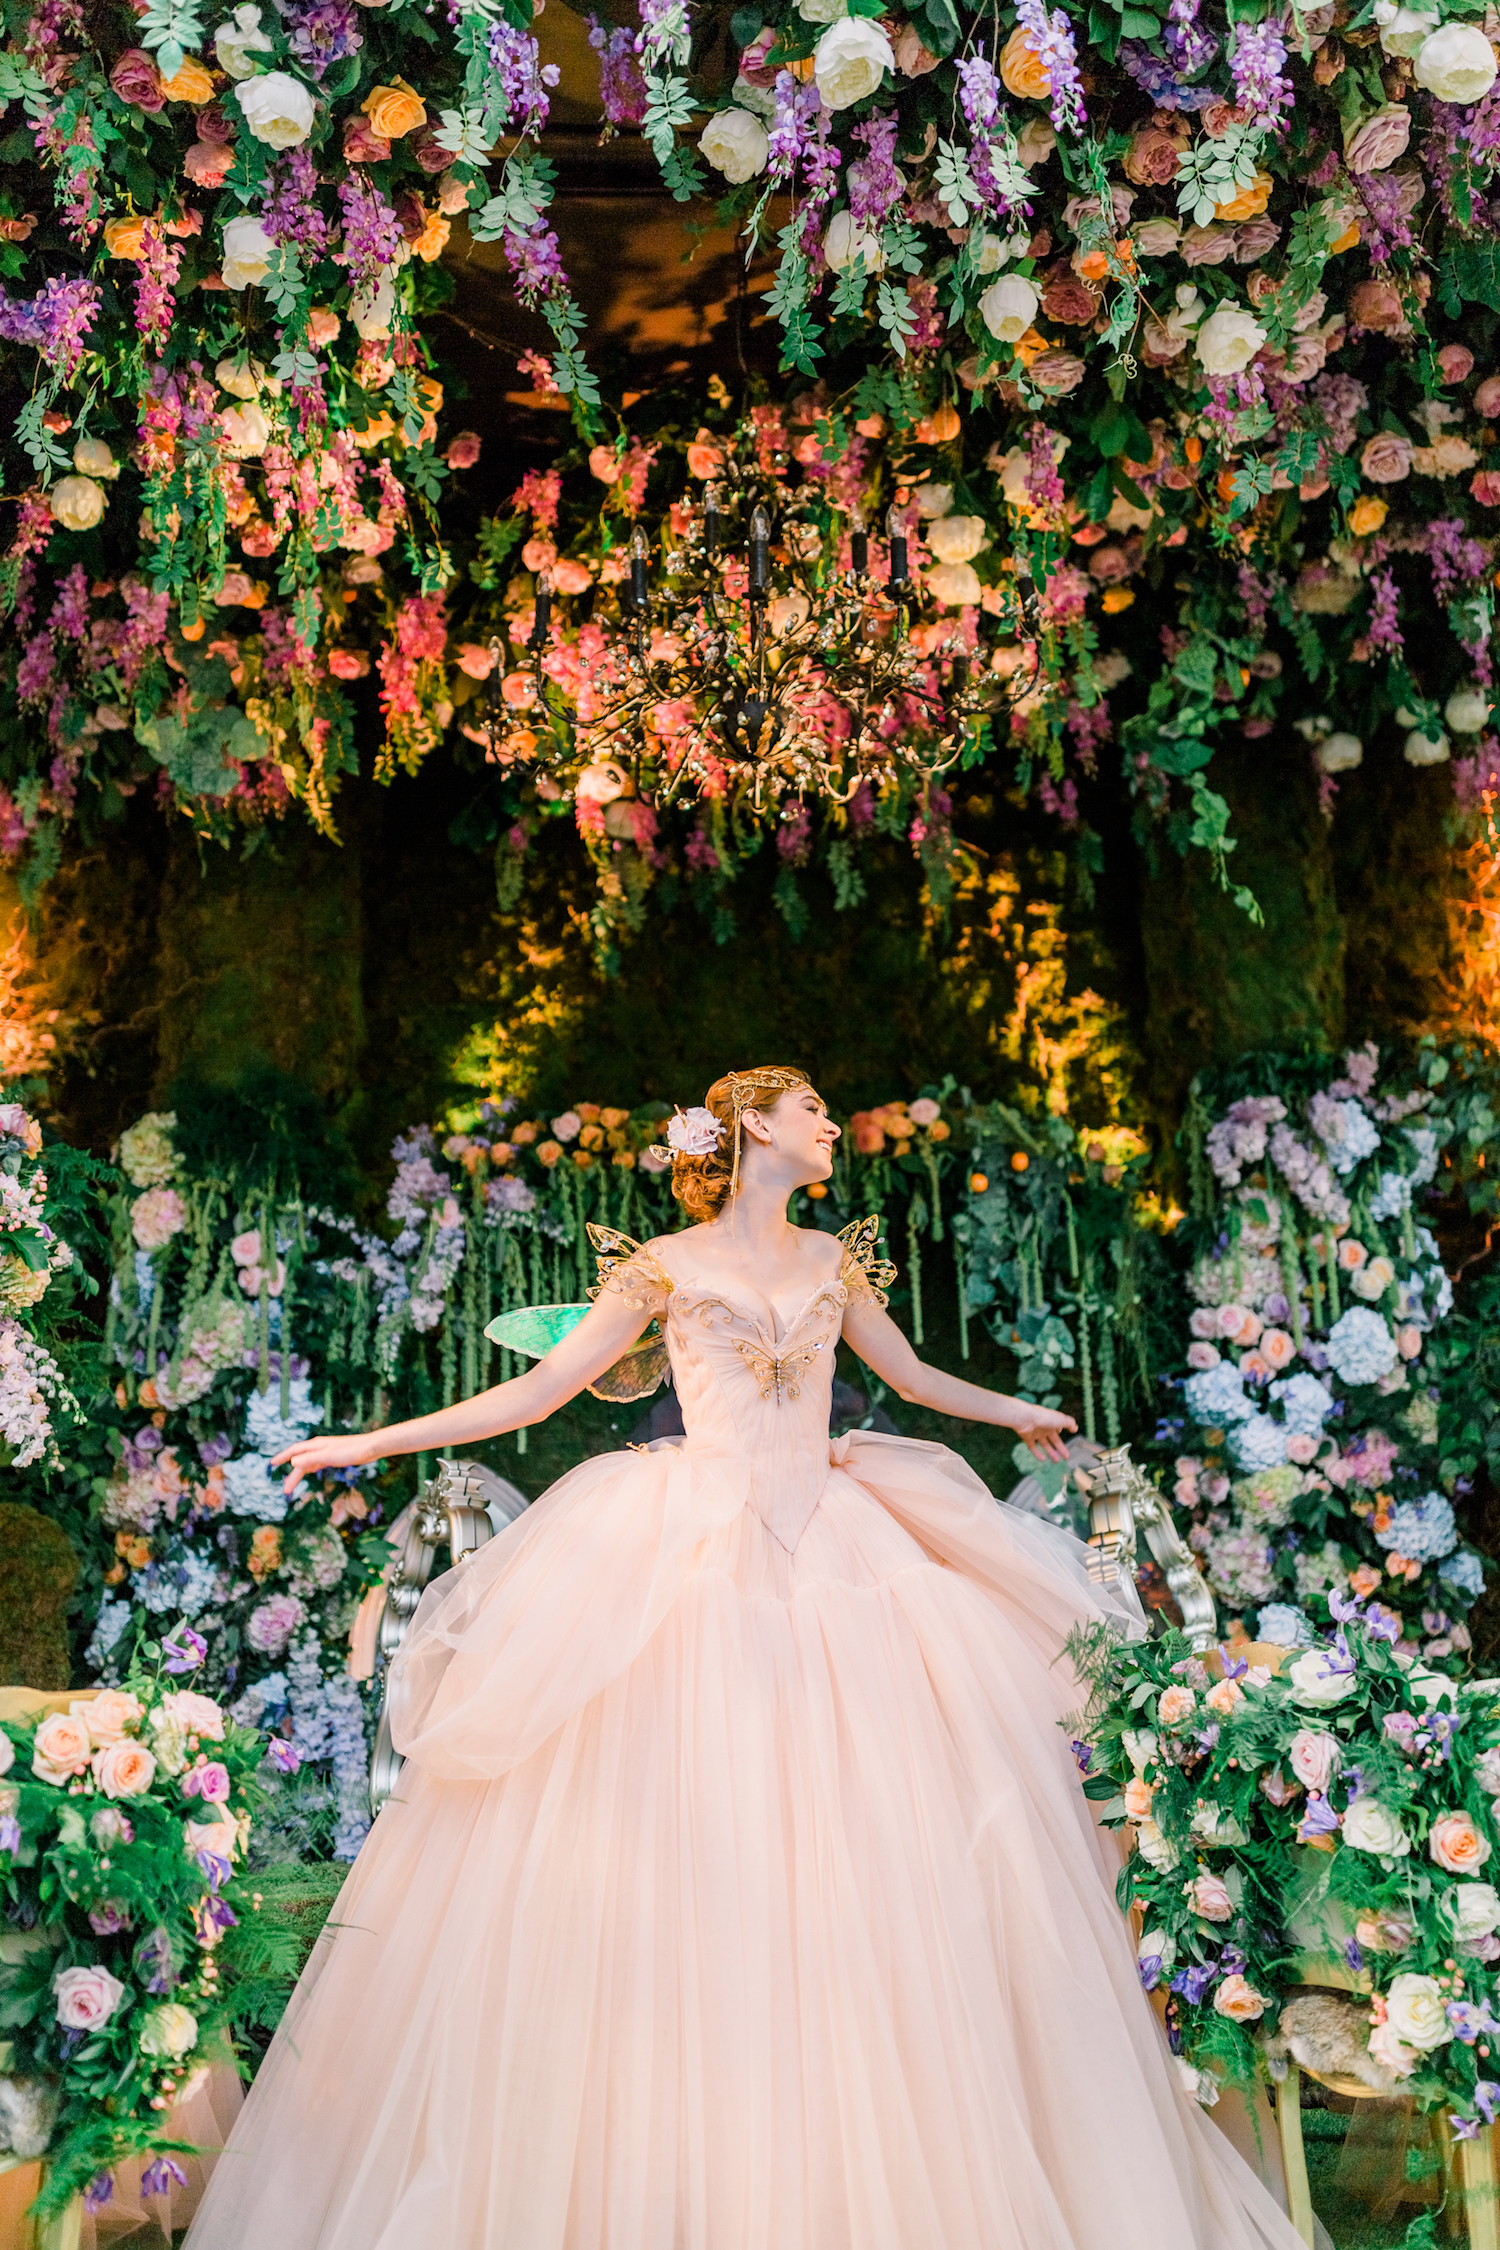 Enchanted Garden Wedding Theme Floral Inspiration With Amie Bone Flowers